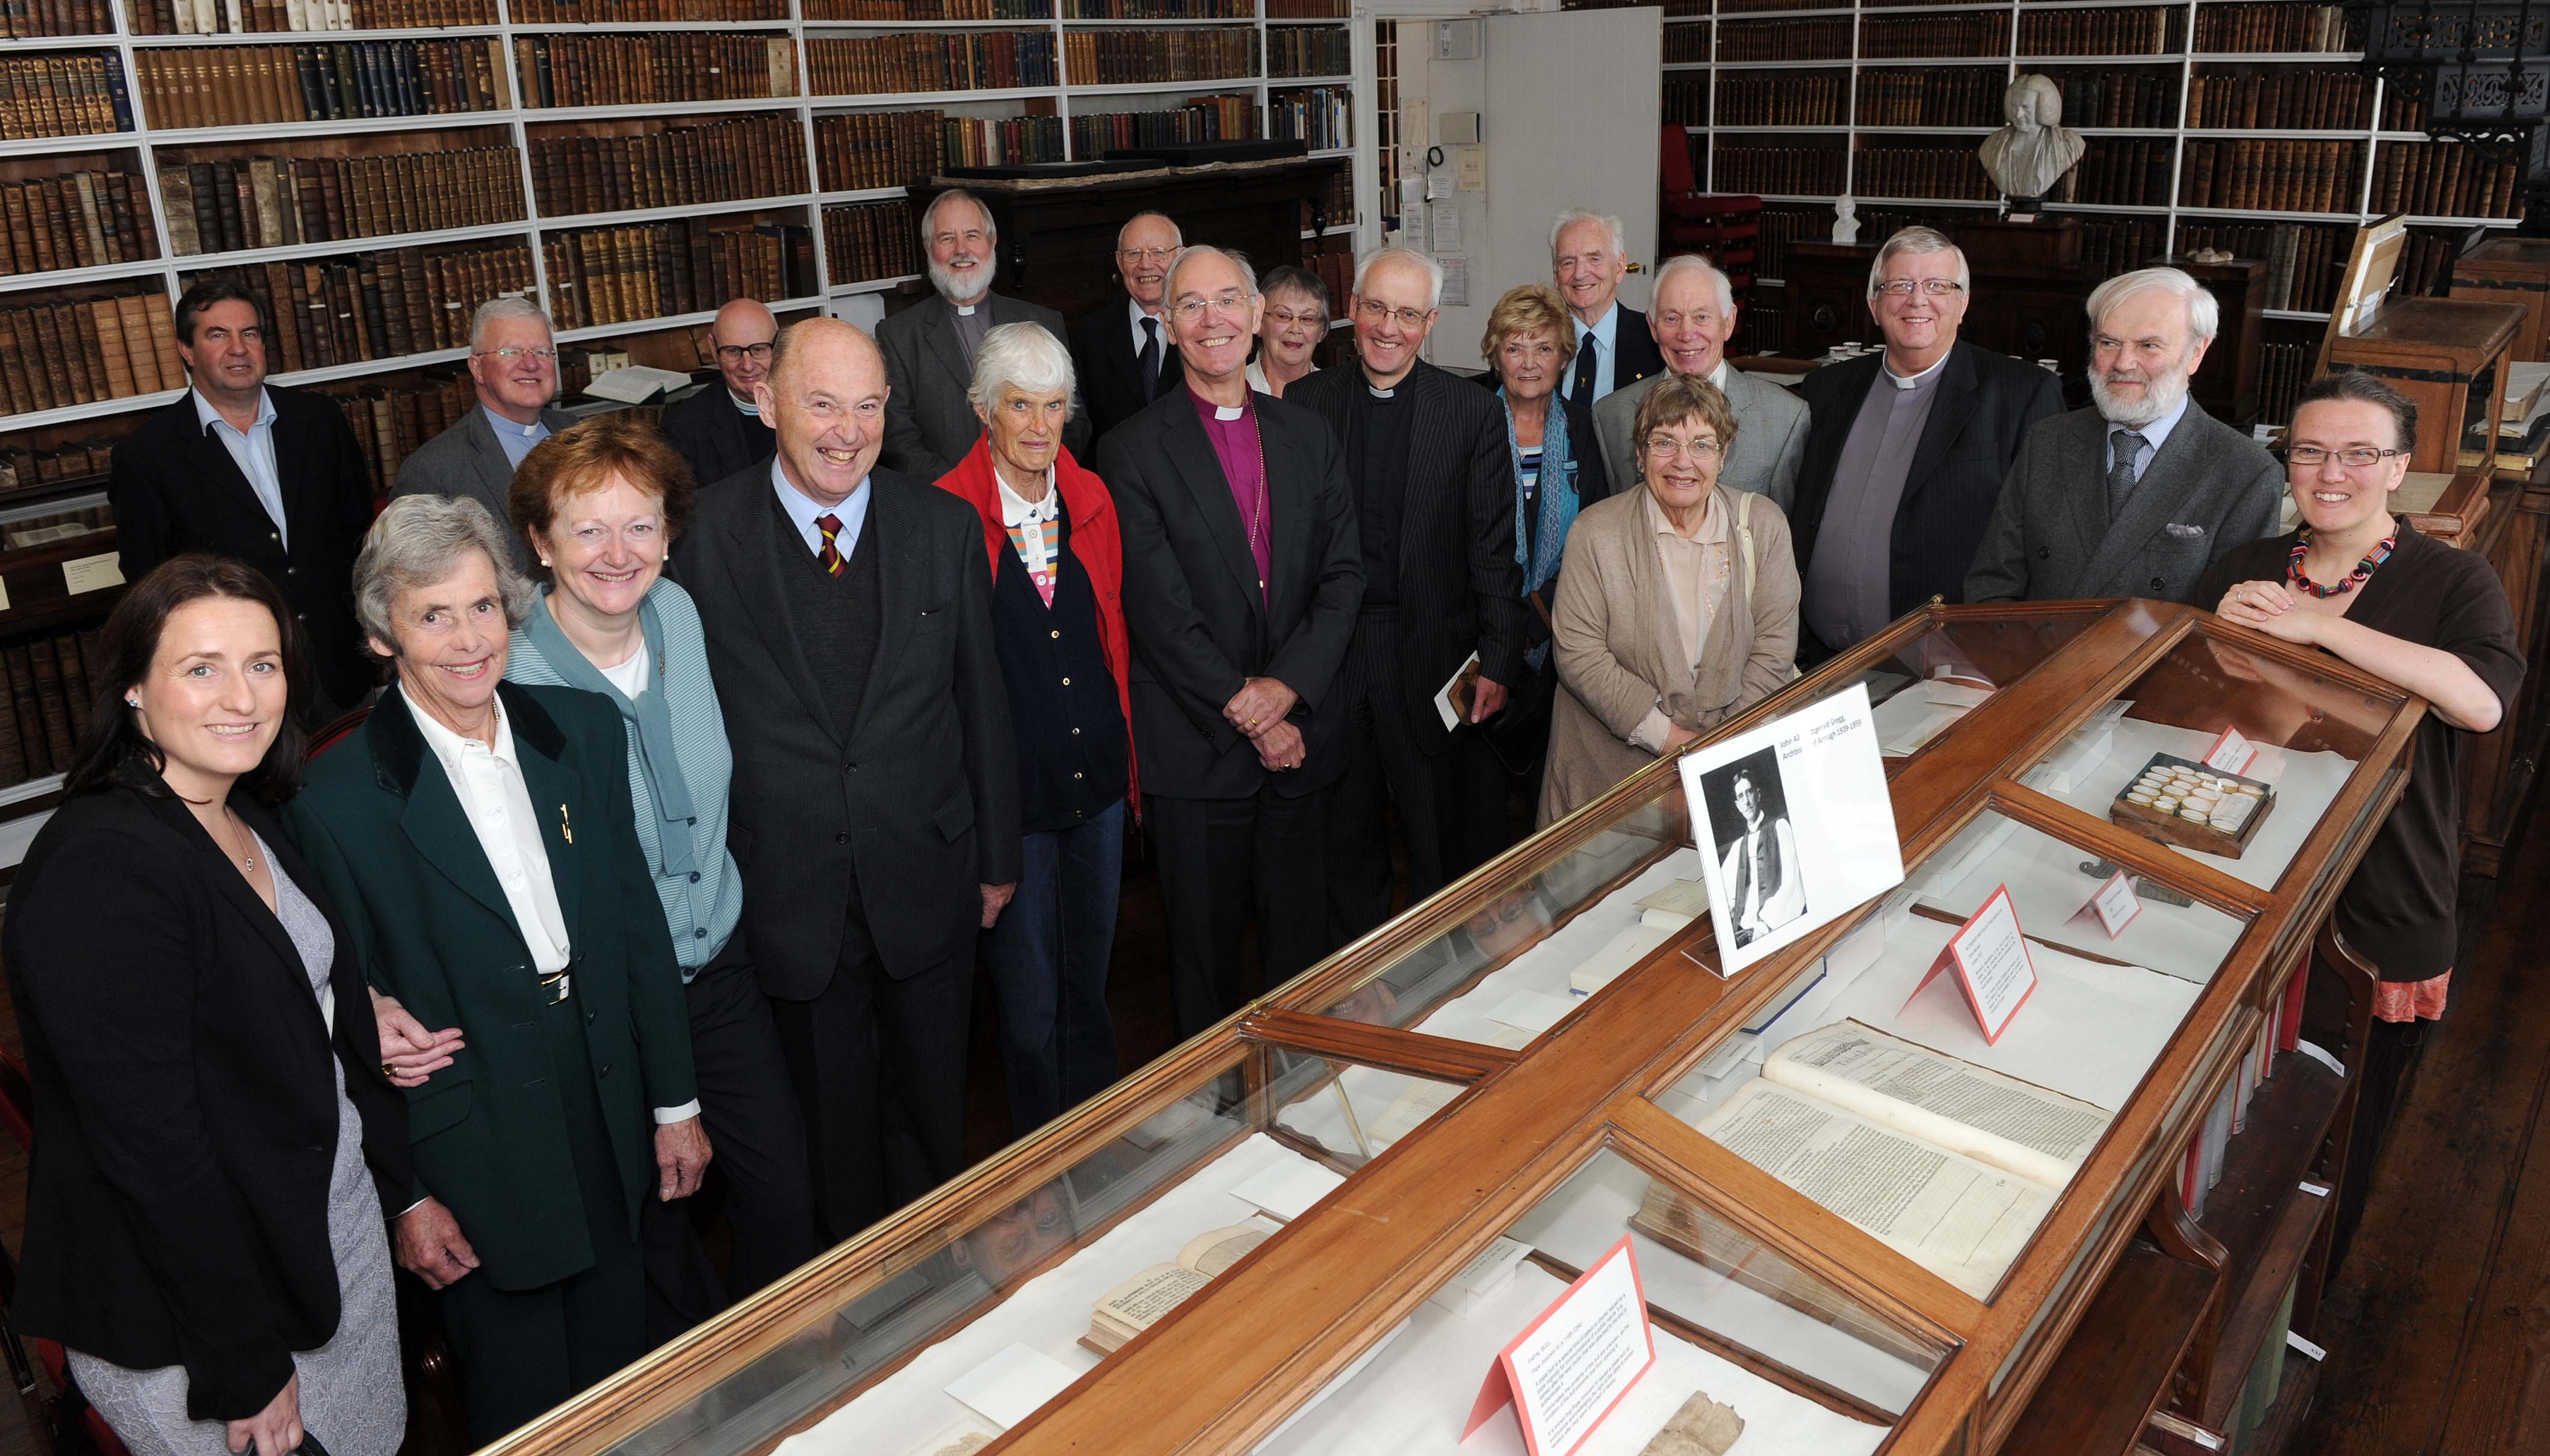 'J.A.F. Gregg : Archbischop of Armagh' in Armagh Robinson Library